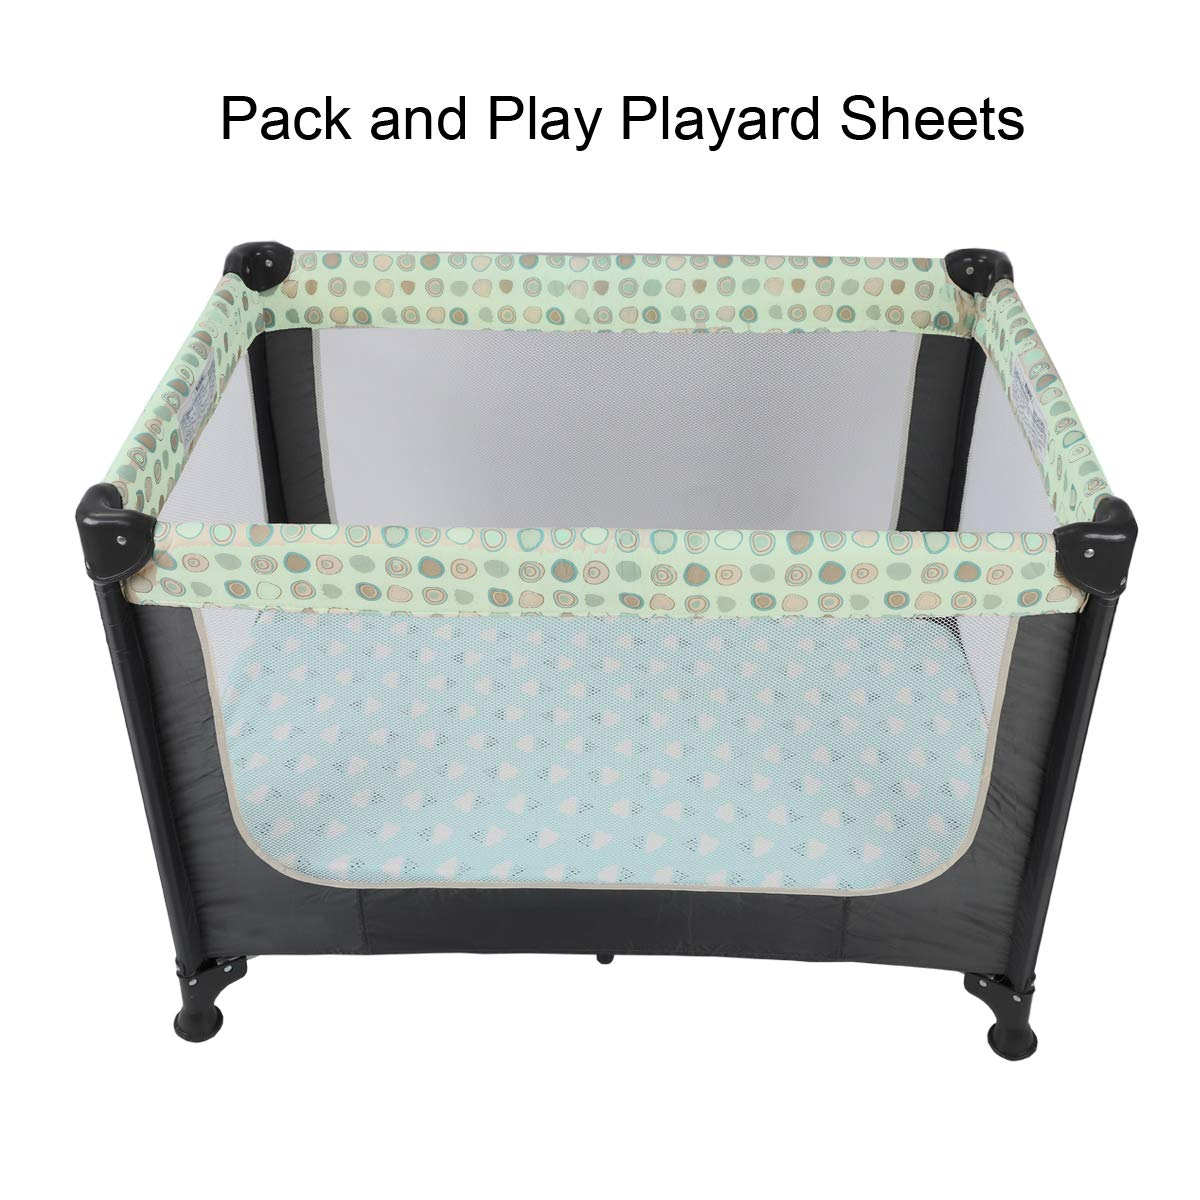 10 Best playards for baby 2021 1